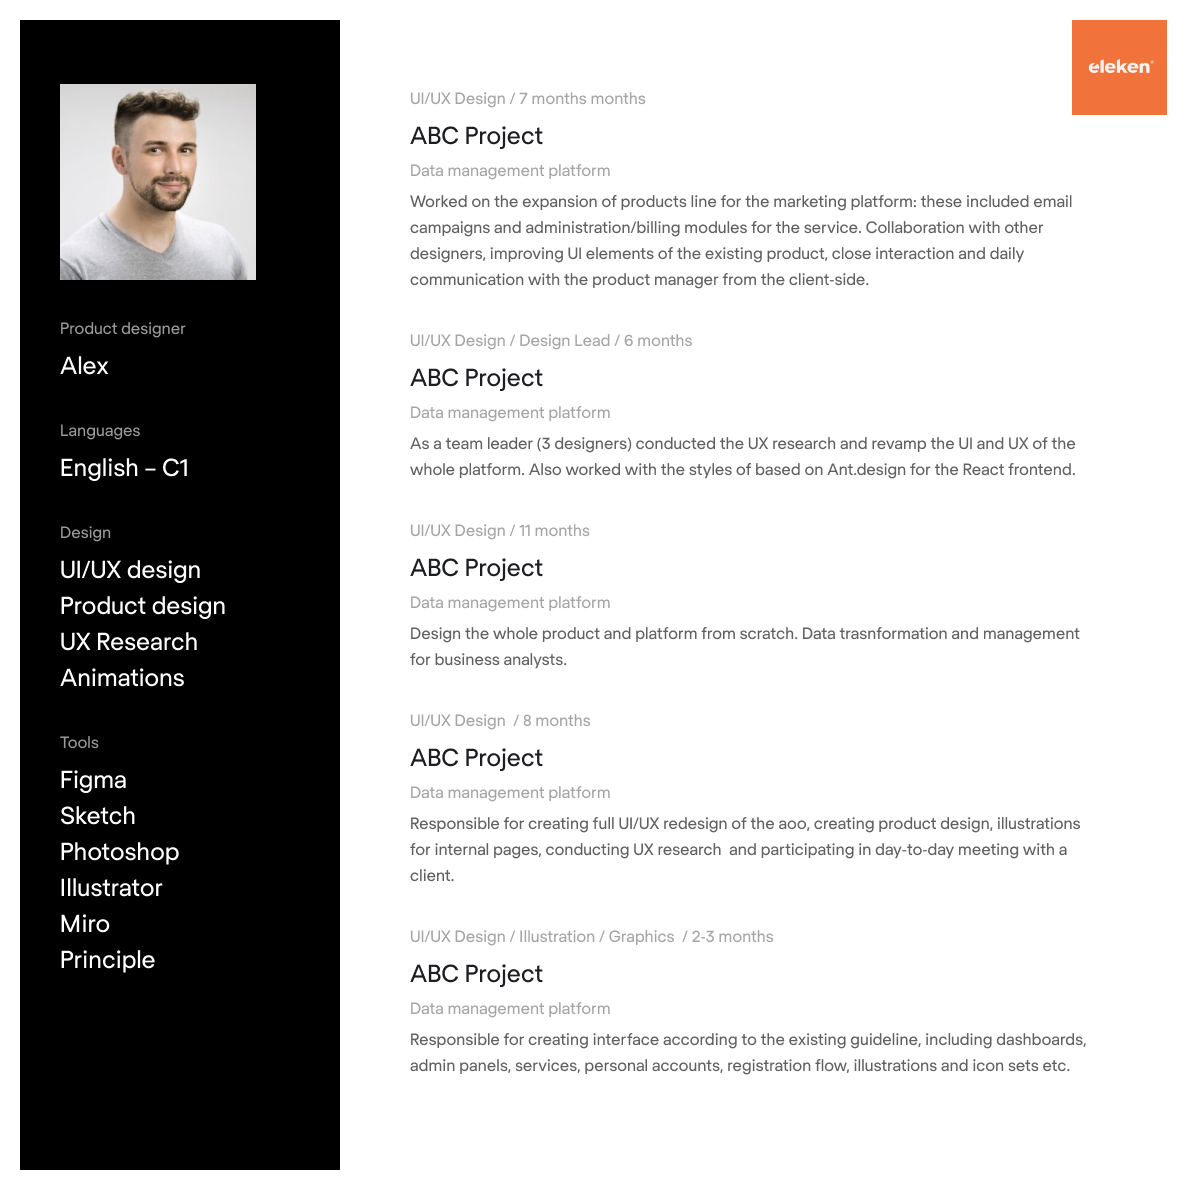 CV example of a product designer